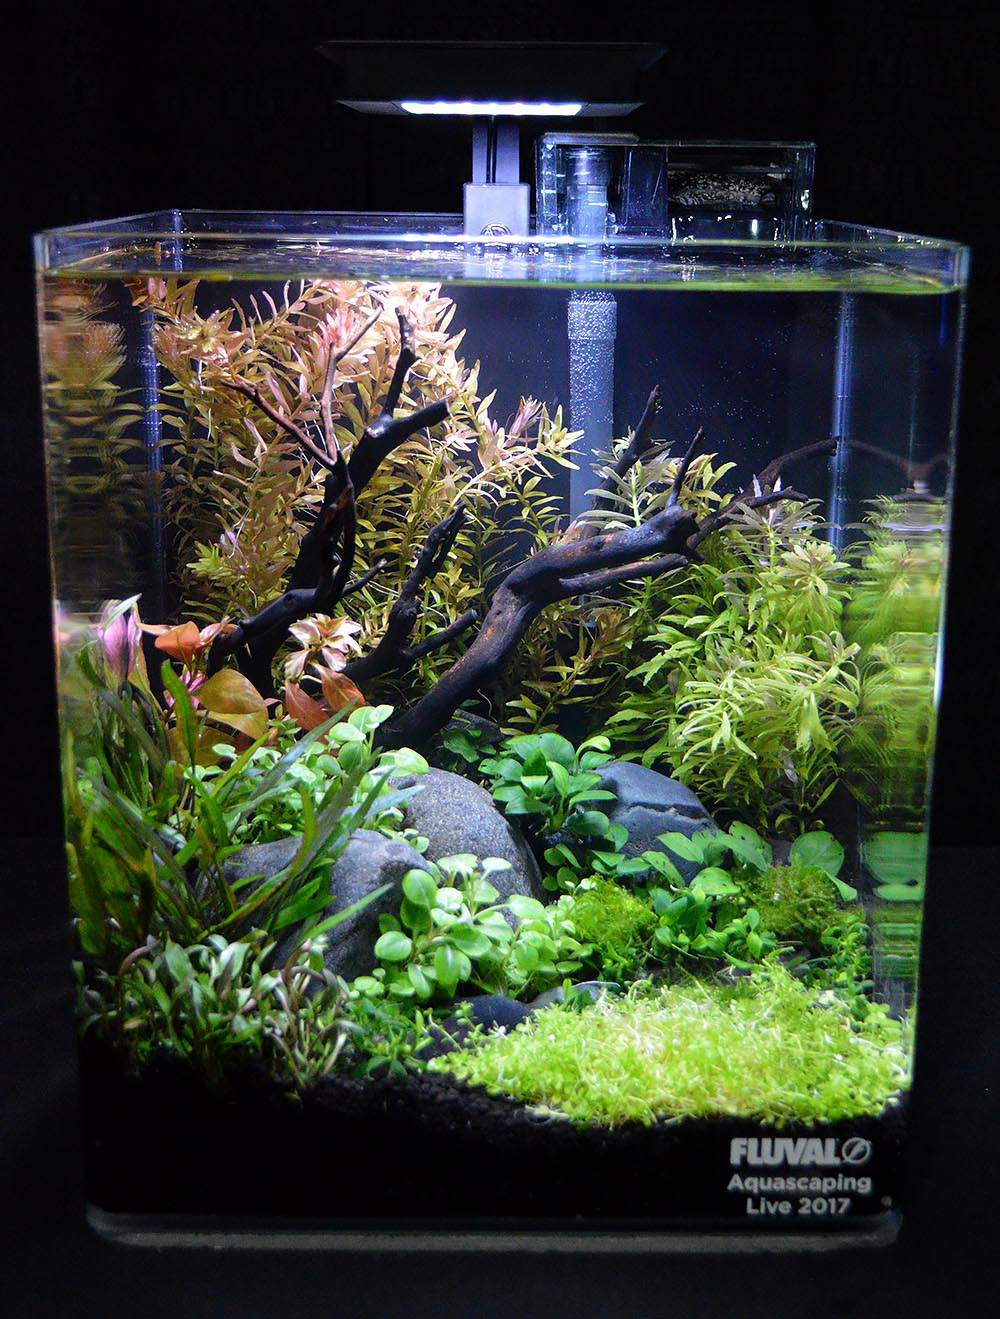 Aquascape by Erachio McCombs